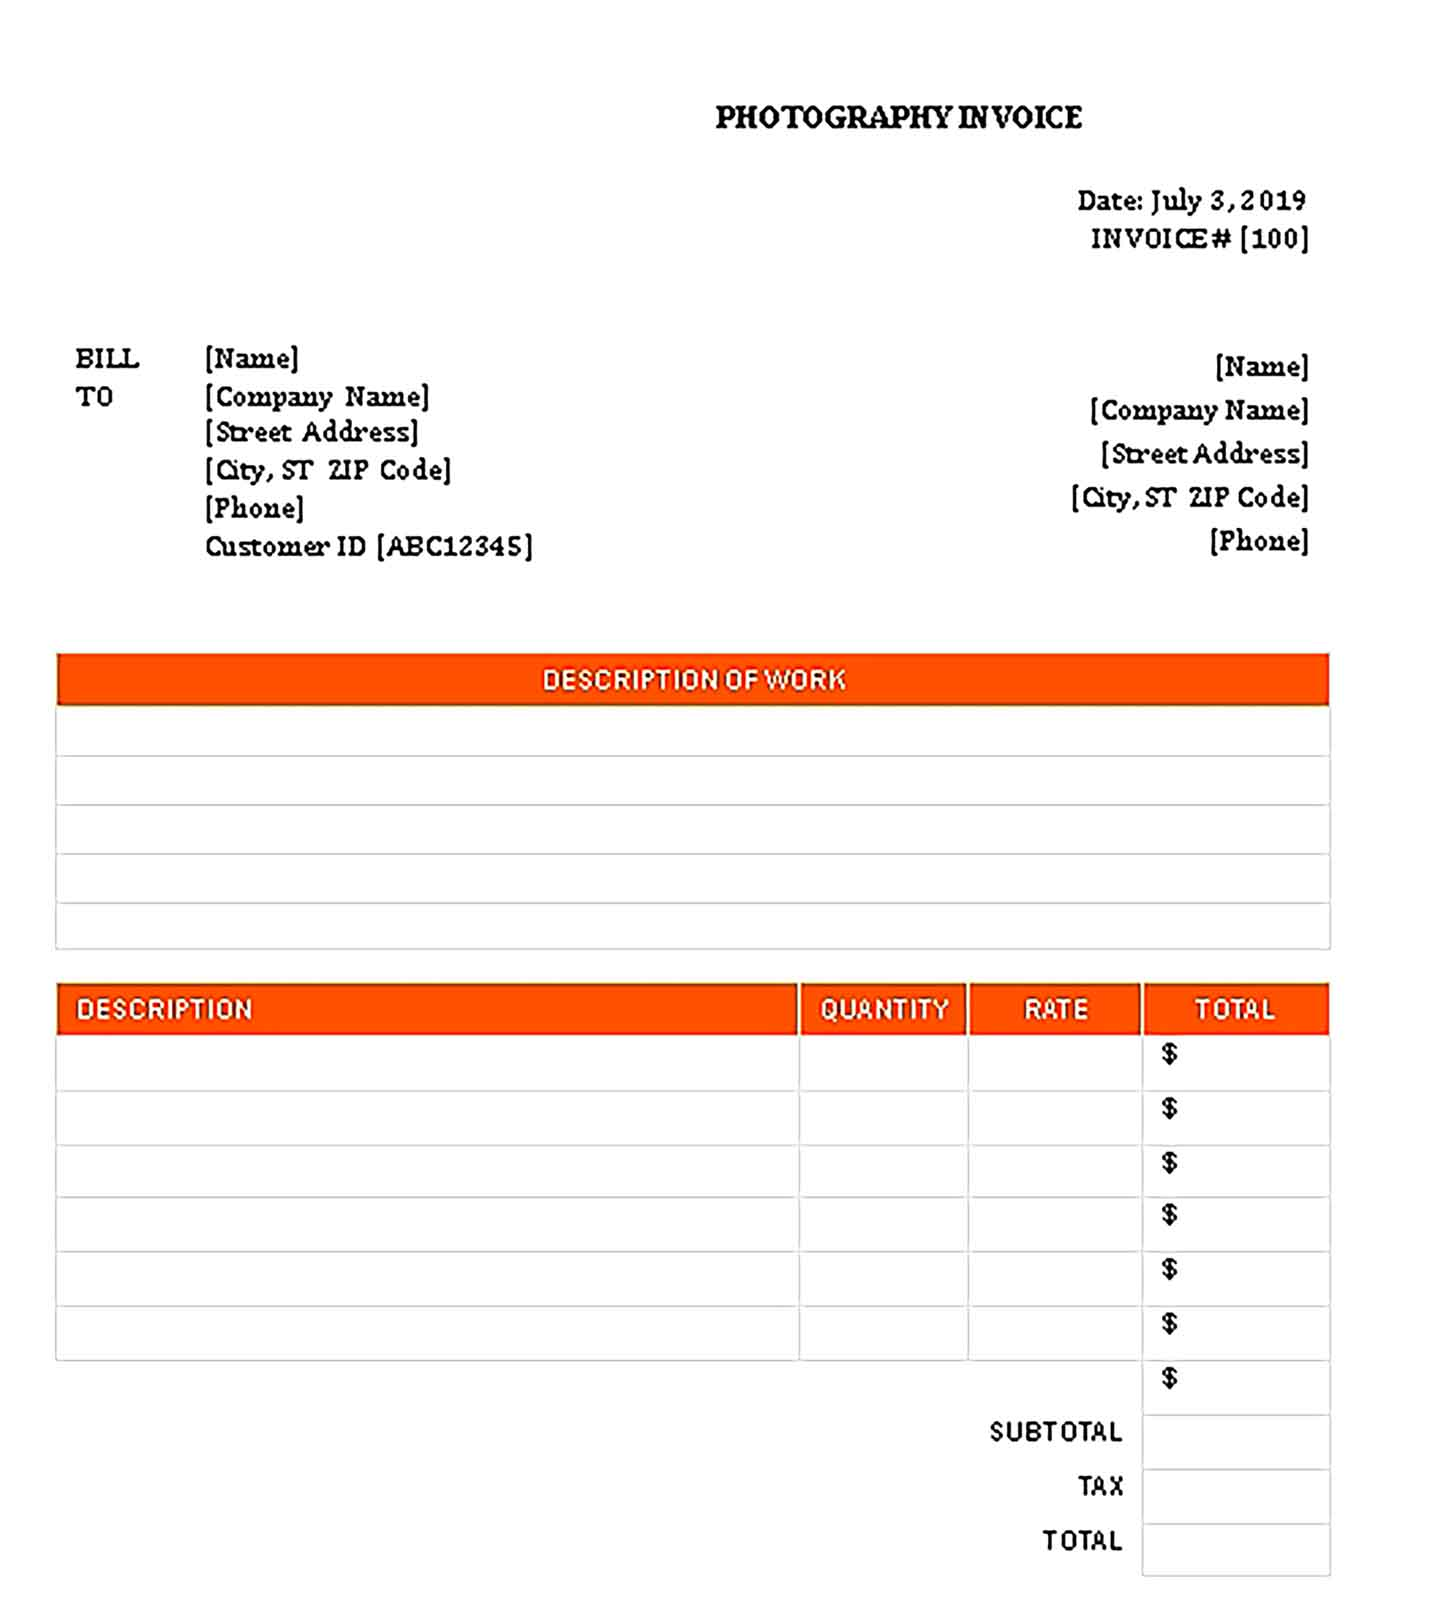 Sample Templates Photography Invoice 001